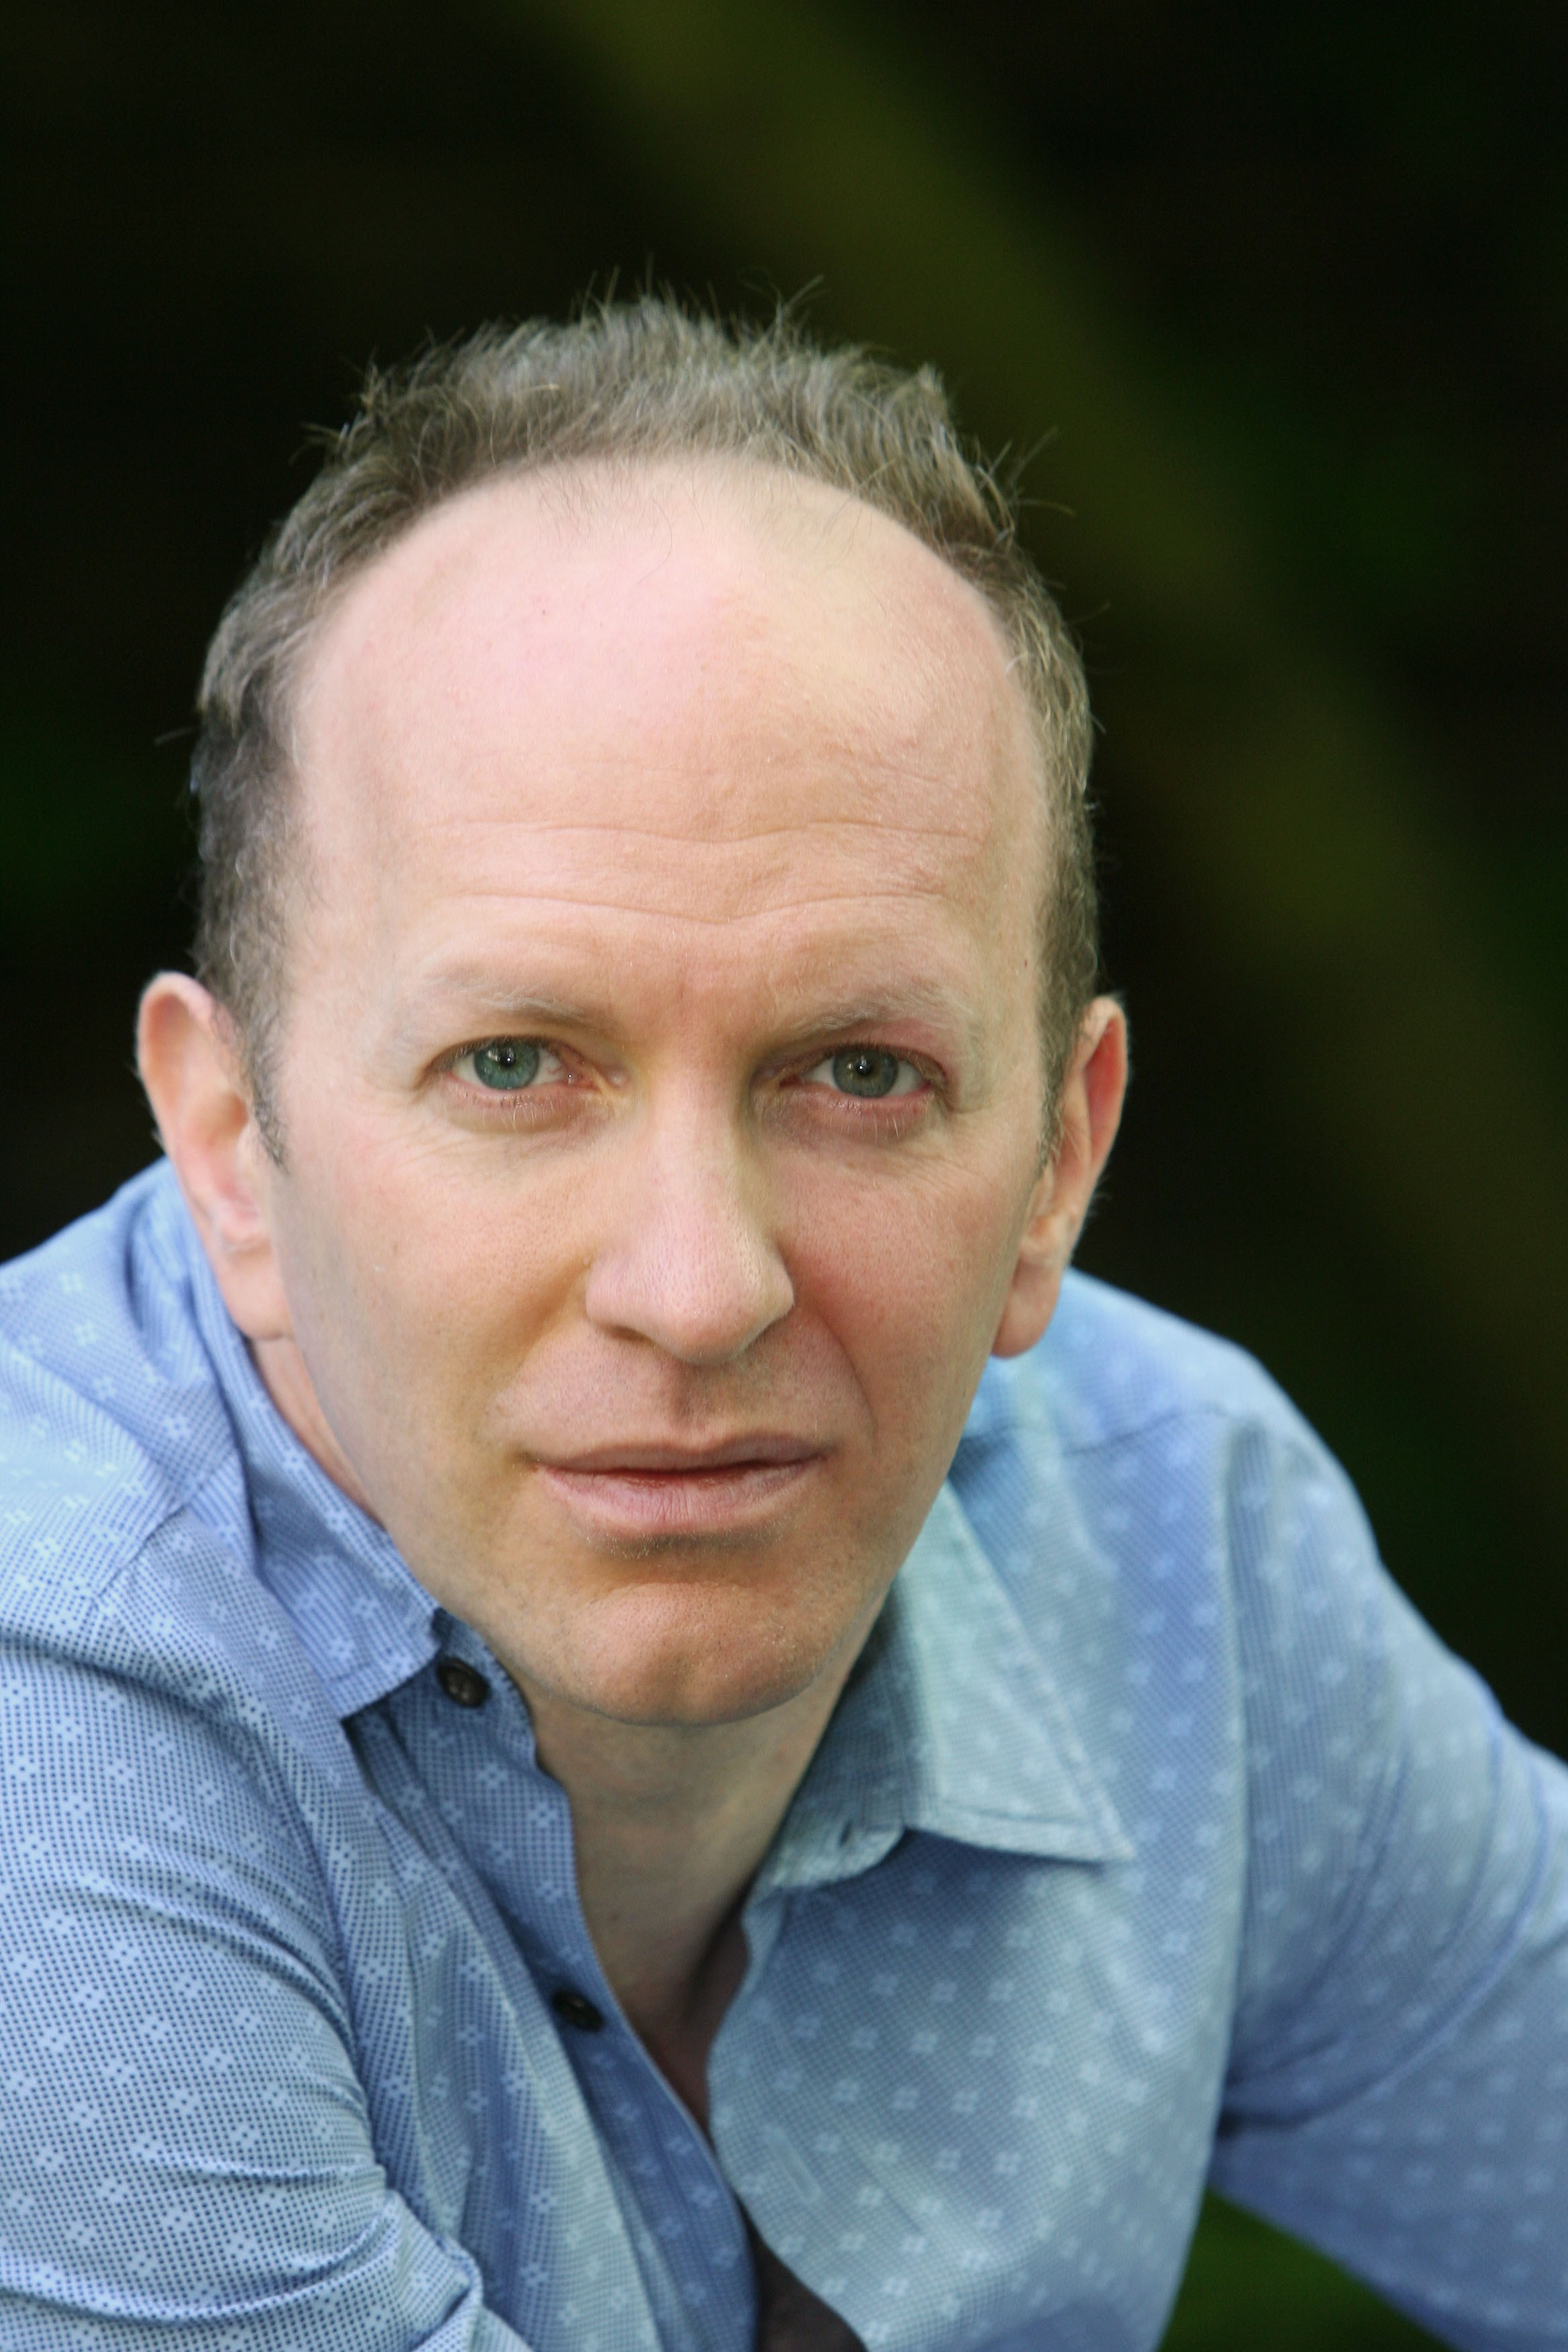 Simon Sebag Montefiore, credit: Ian Jones